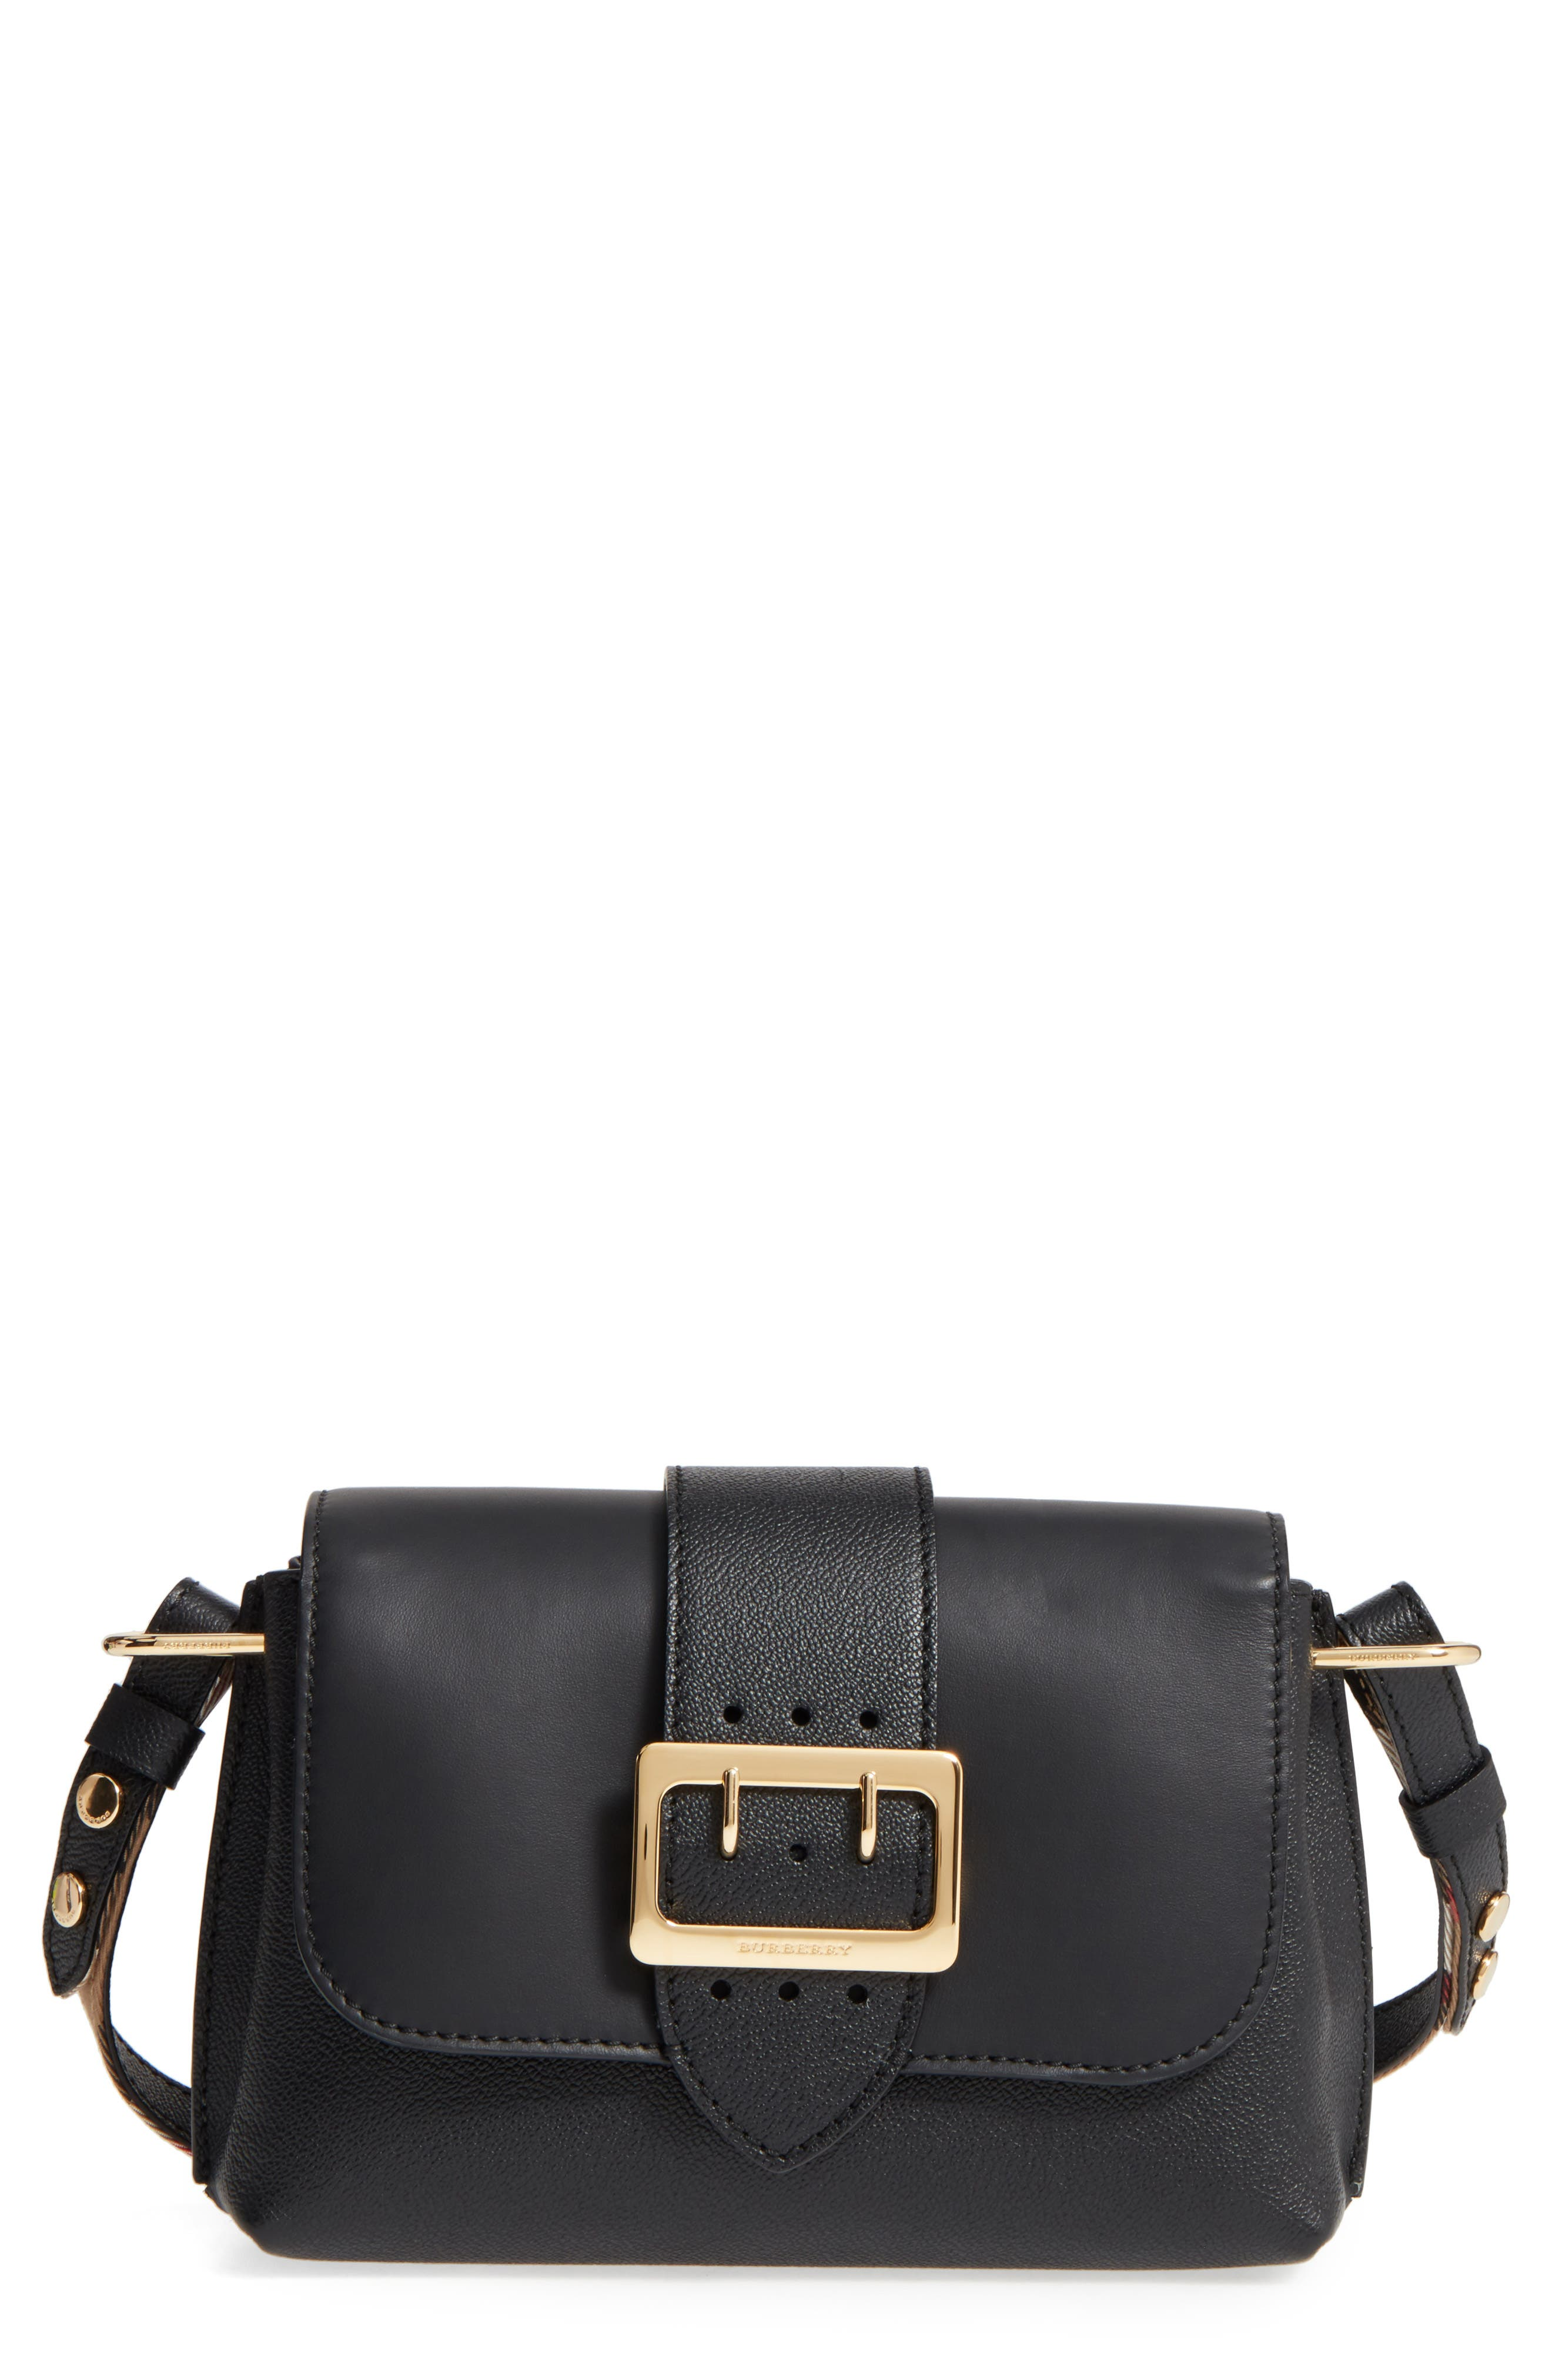 Alternate Image 1 Selected - Burberry Small Medley Leather Crossbody Bag